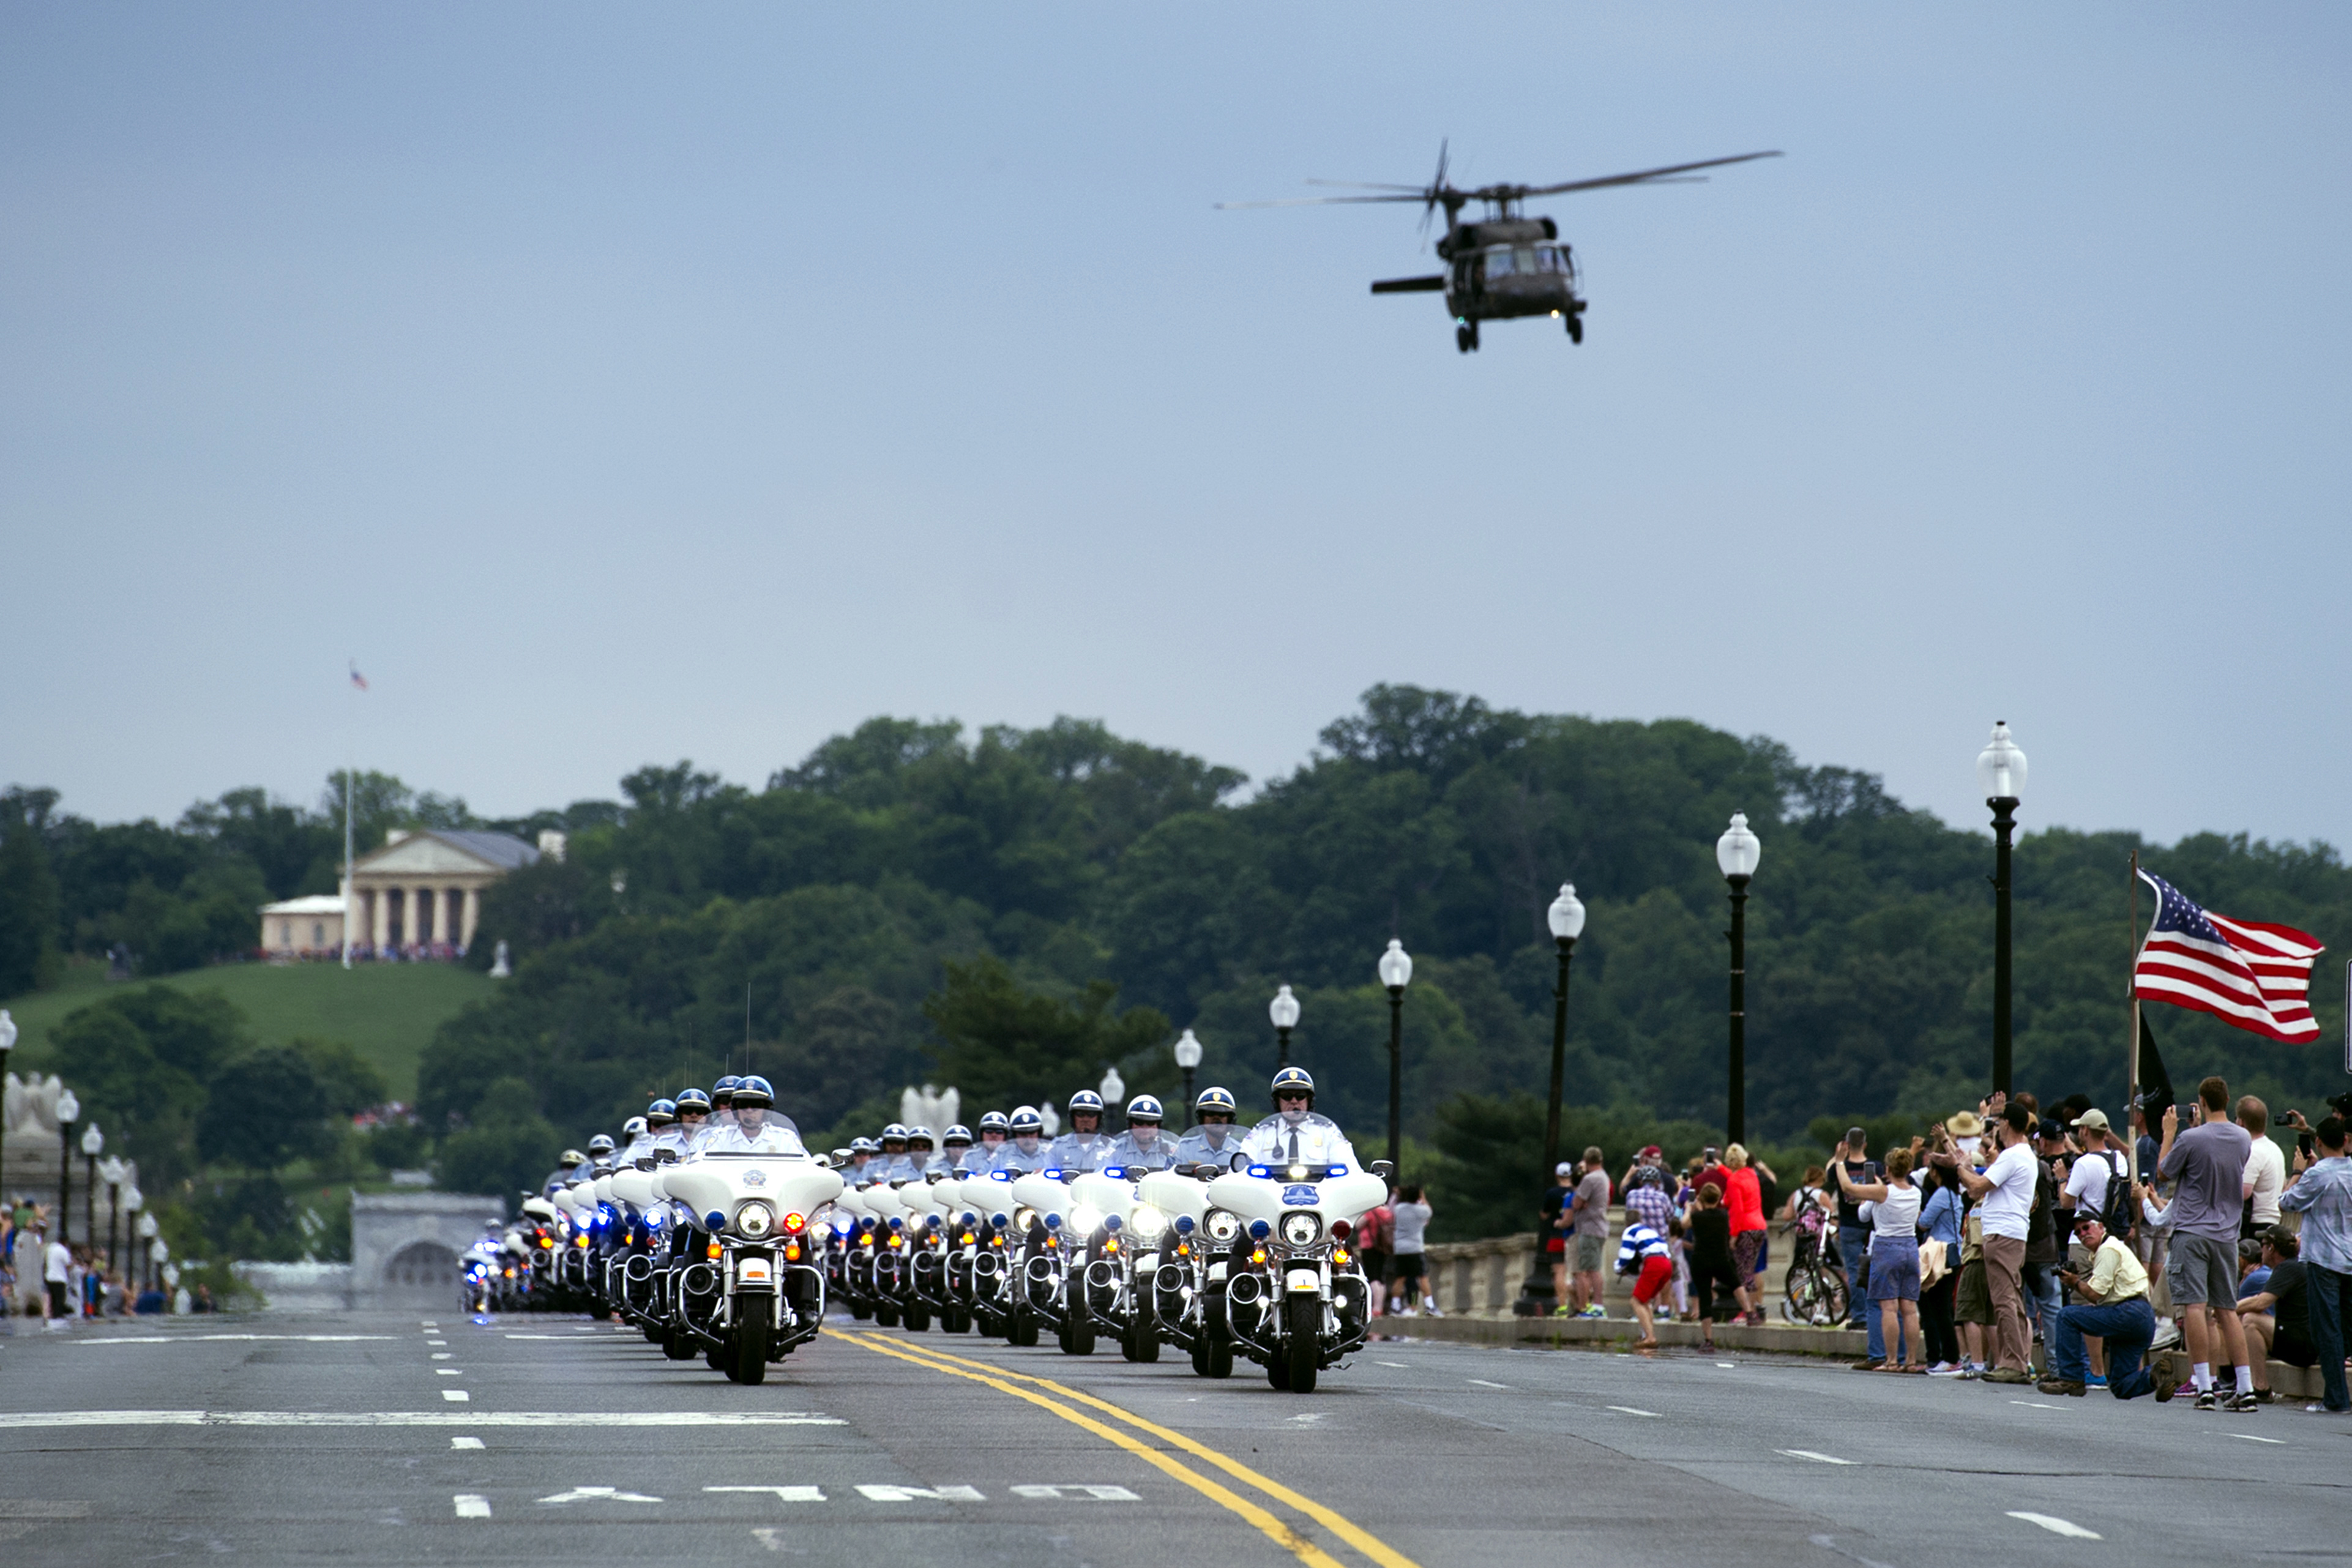 A military helicopter flies over a police escort on the Memorial Bridge, for motorcyclists riding in the 30th anniversary of the Rolling Thunder 'Ride for Freedom' demonstration in Washington, May 28, 2017.